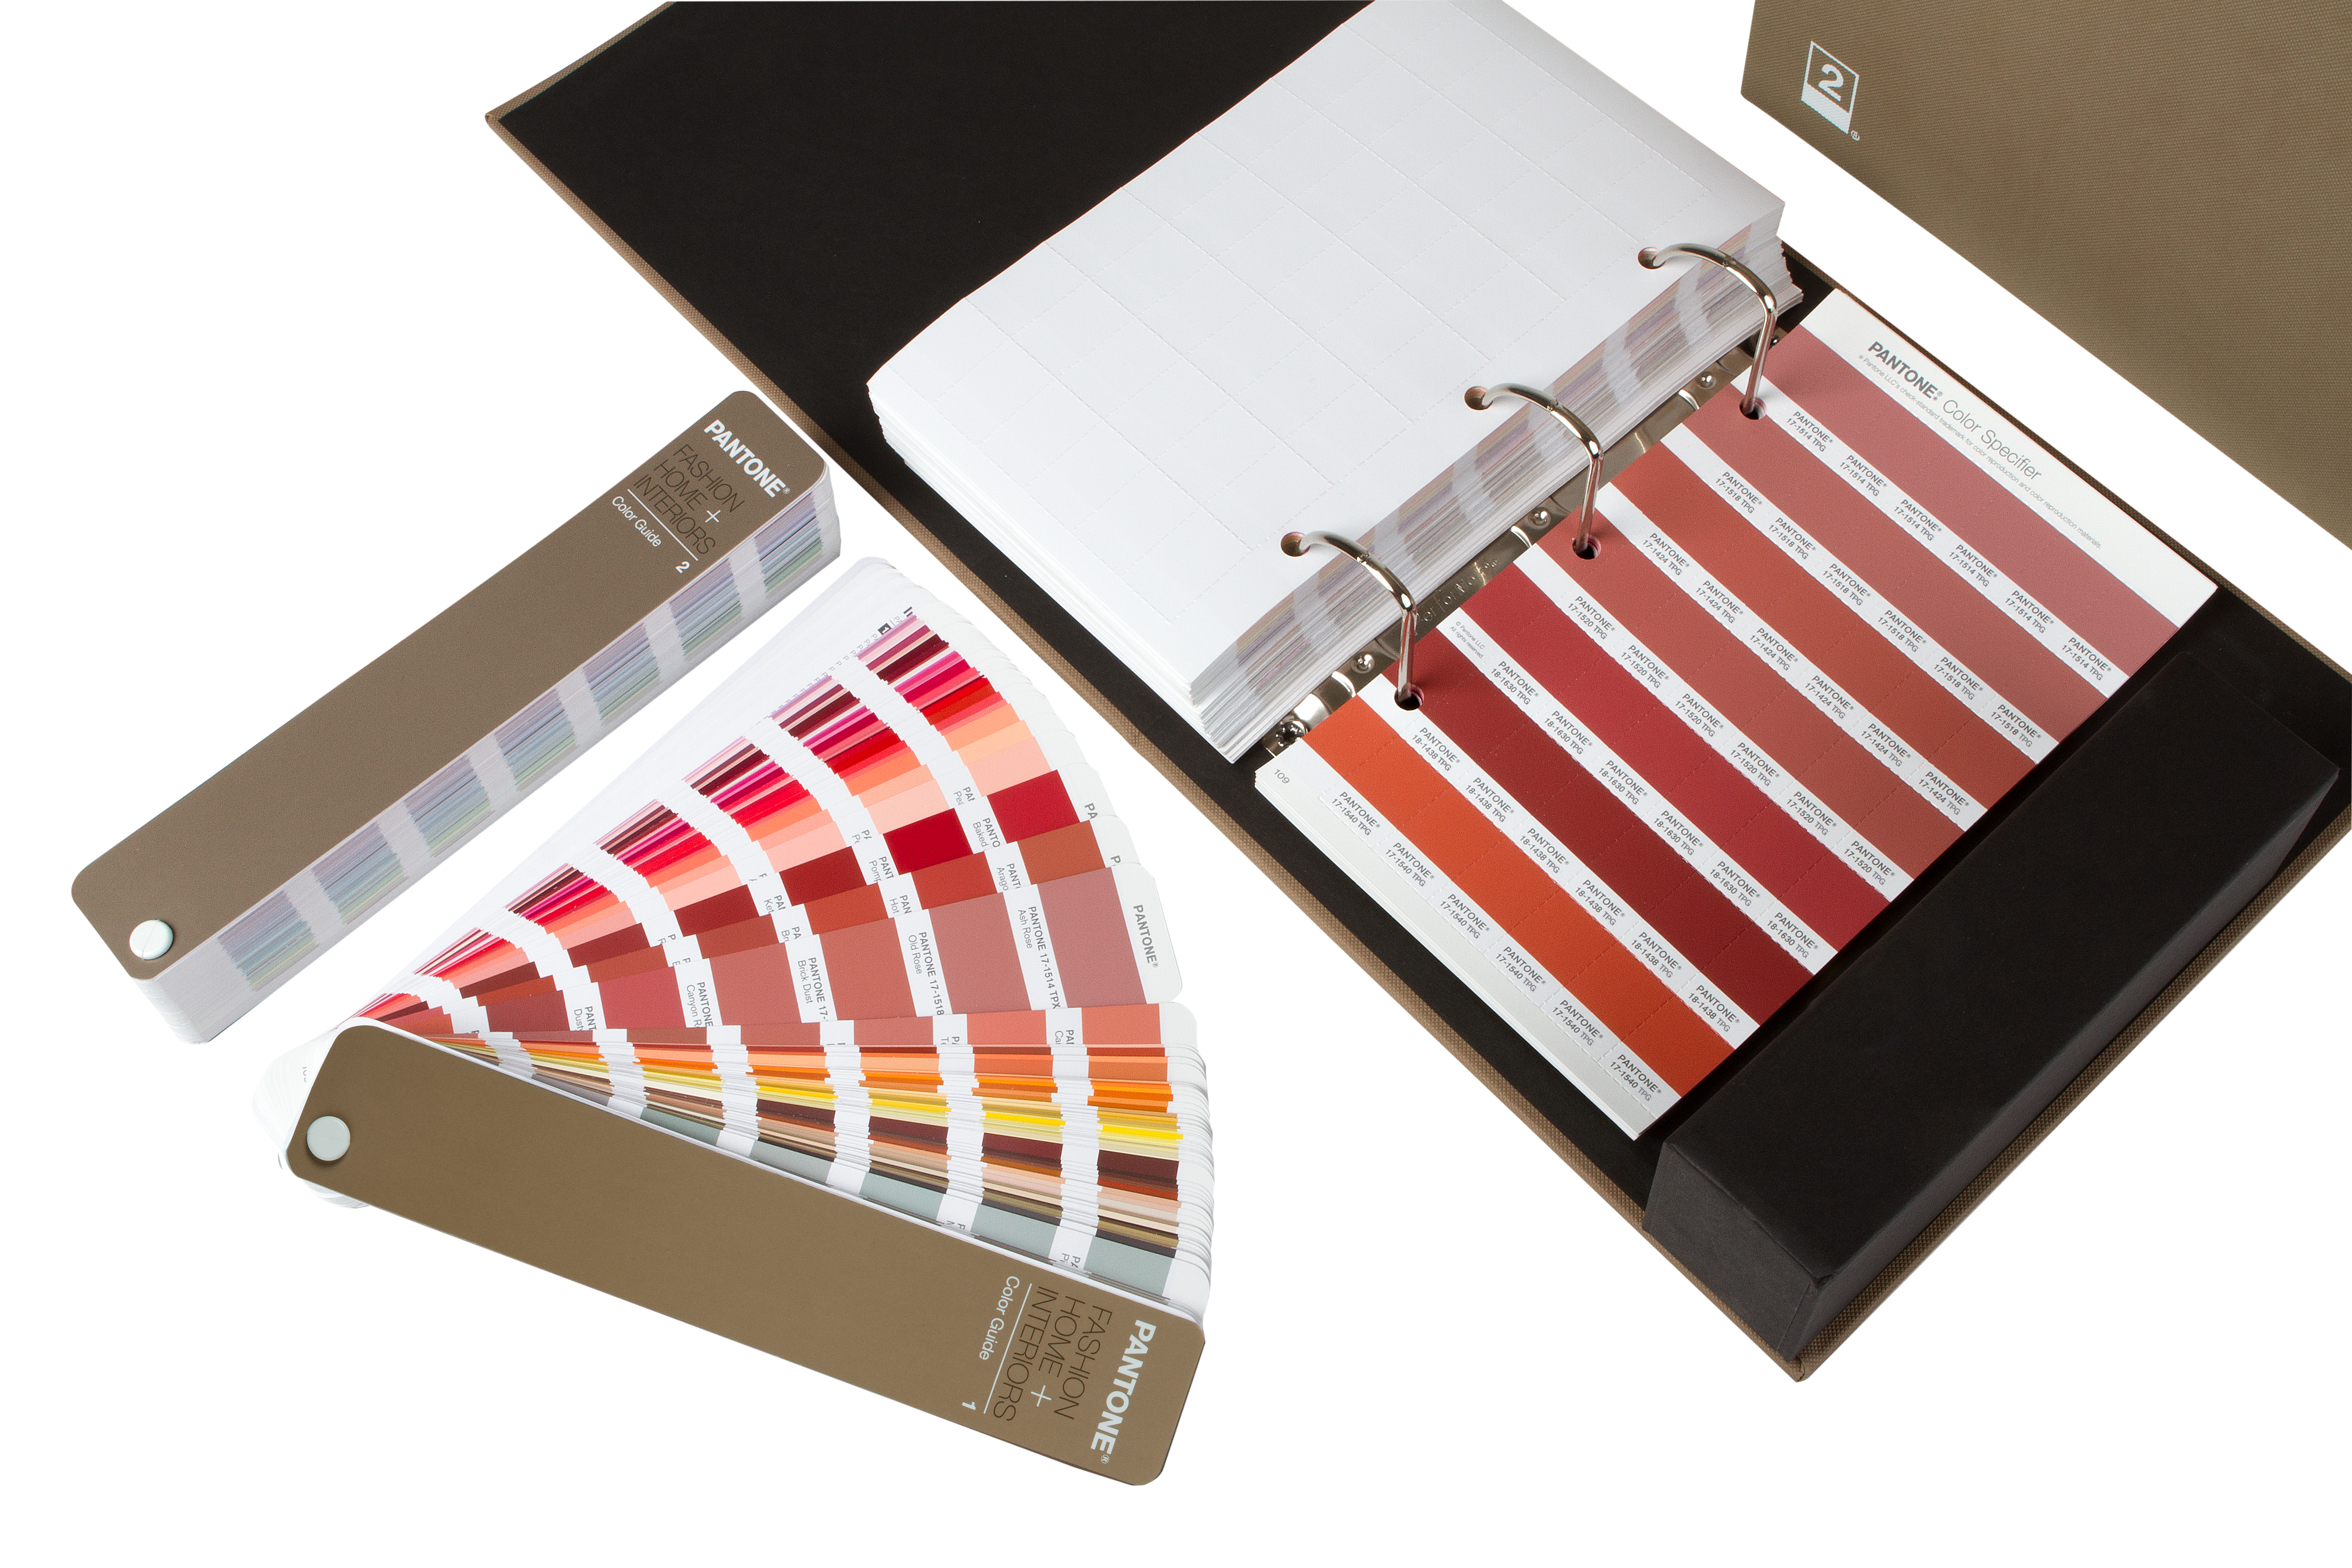 Pantone FHI Specifier and Guide Set